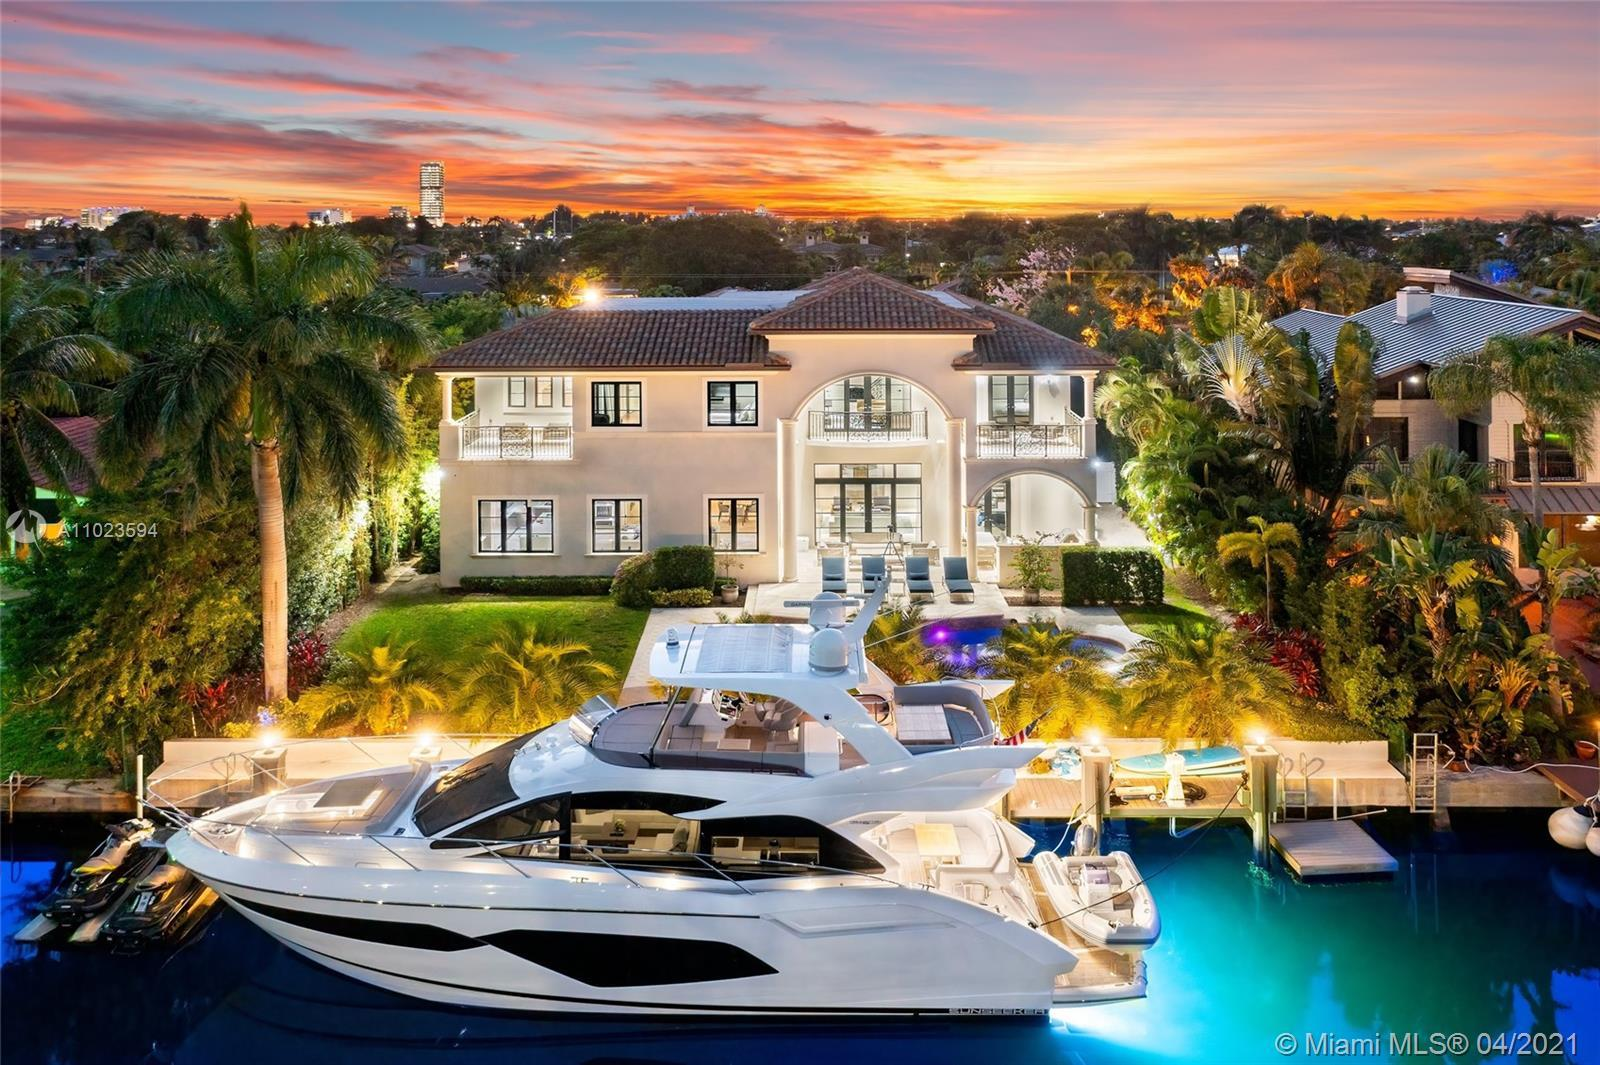 THIS CUSTOM BUILT WATERFRONT SMART HOME FEATURES 6 BEDROOMS PLUS OFFICE AND STAFF ROOM, 7 1/2 BATHRO